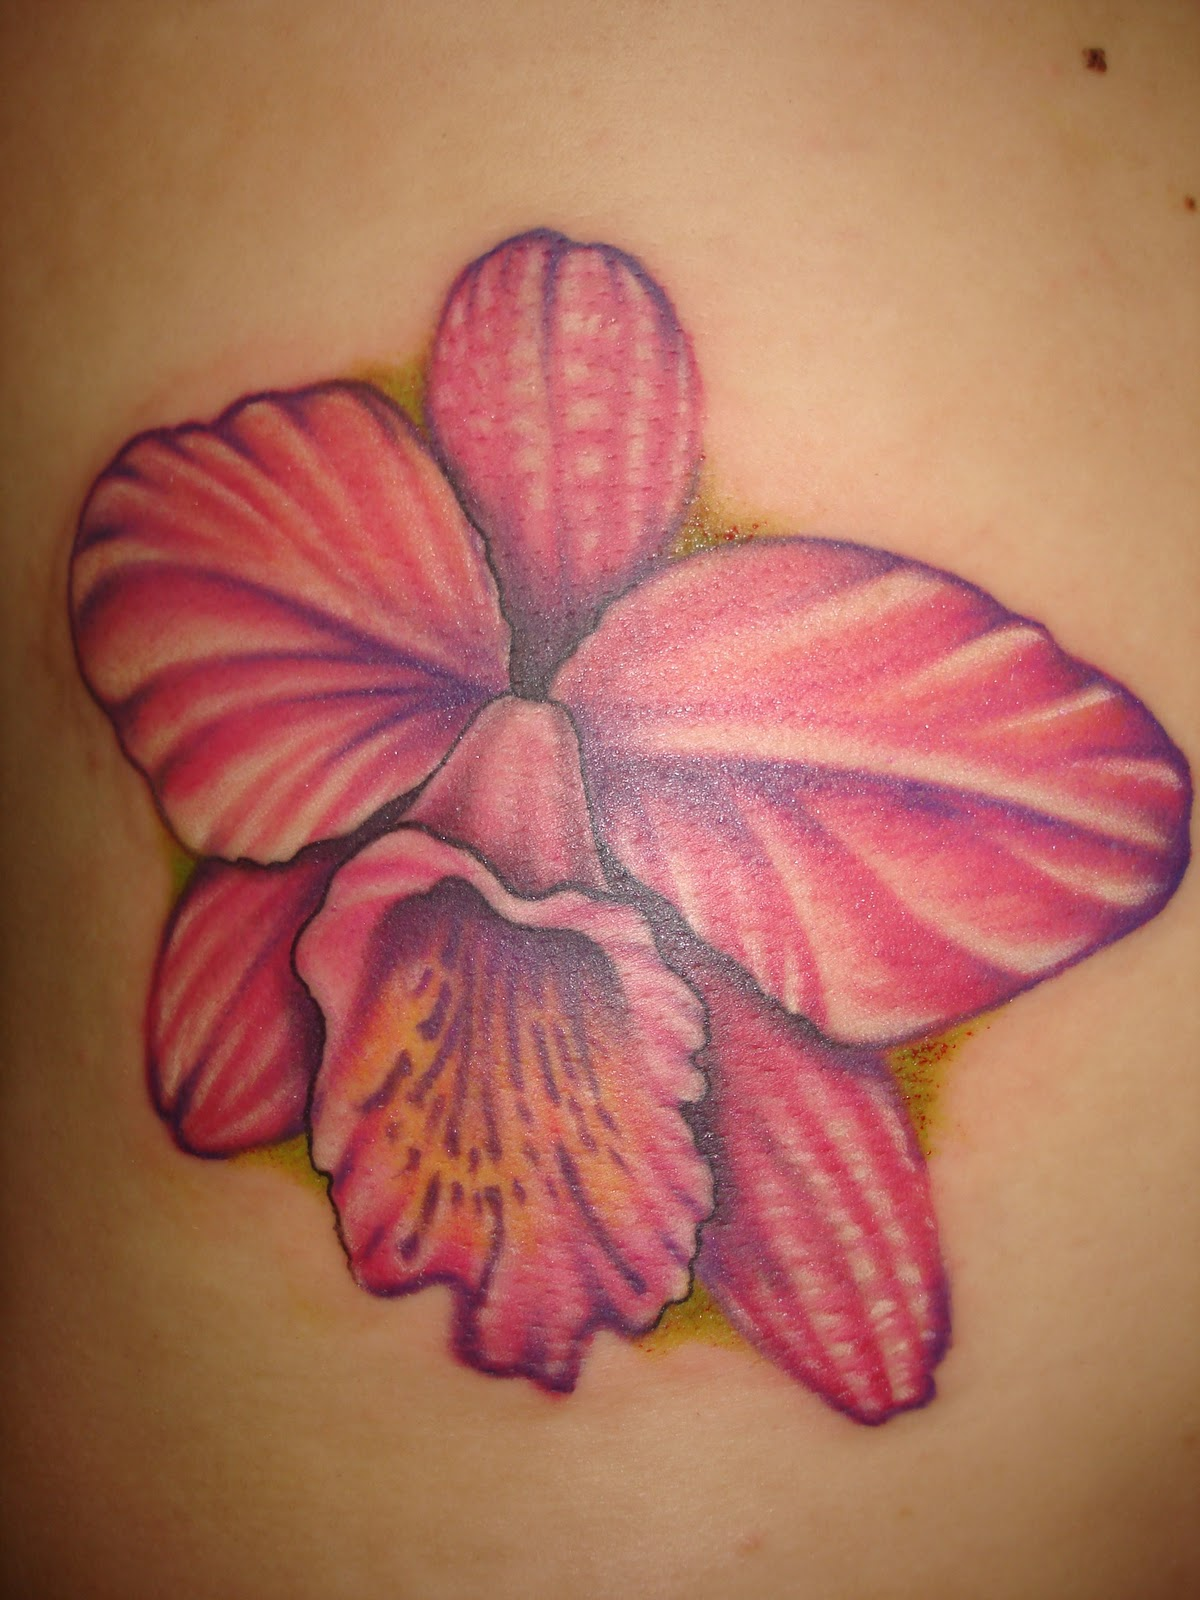 Orchid Tattoos Designs Ideas and Meaning